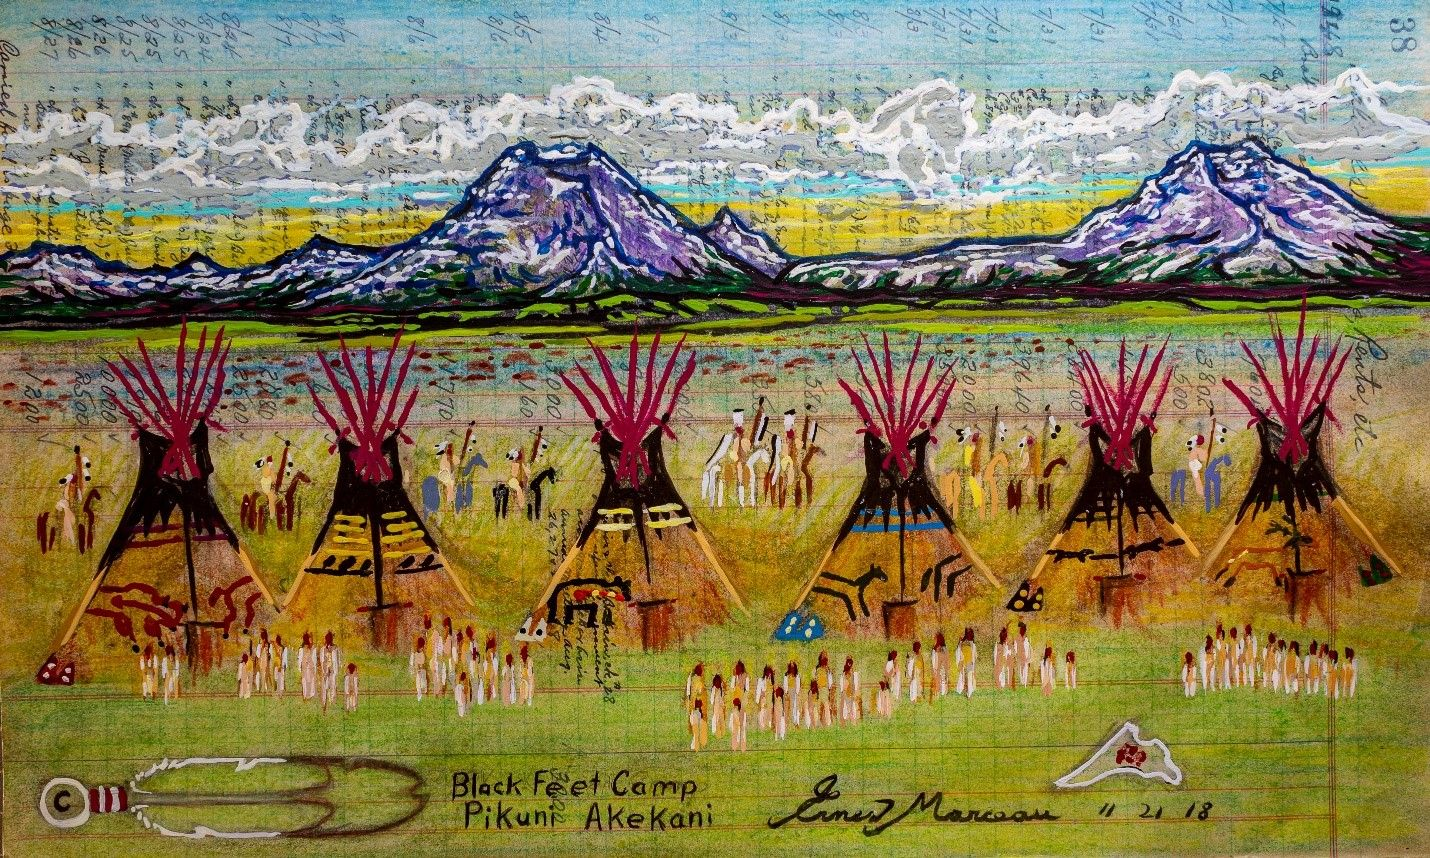 Blackfeet Camp – Pikuni Akekani